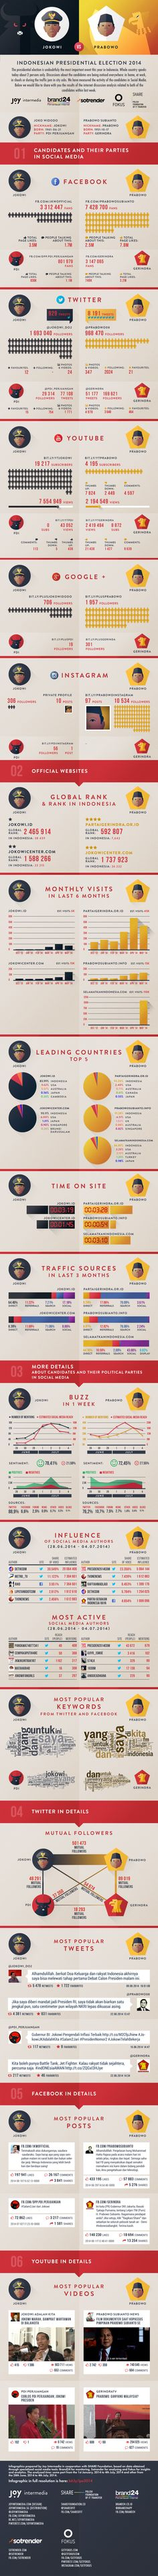 INDONESIAN PRESIDENTIAL ELECTION 2014 – INFOGRAPHIC